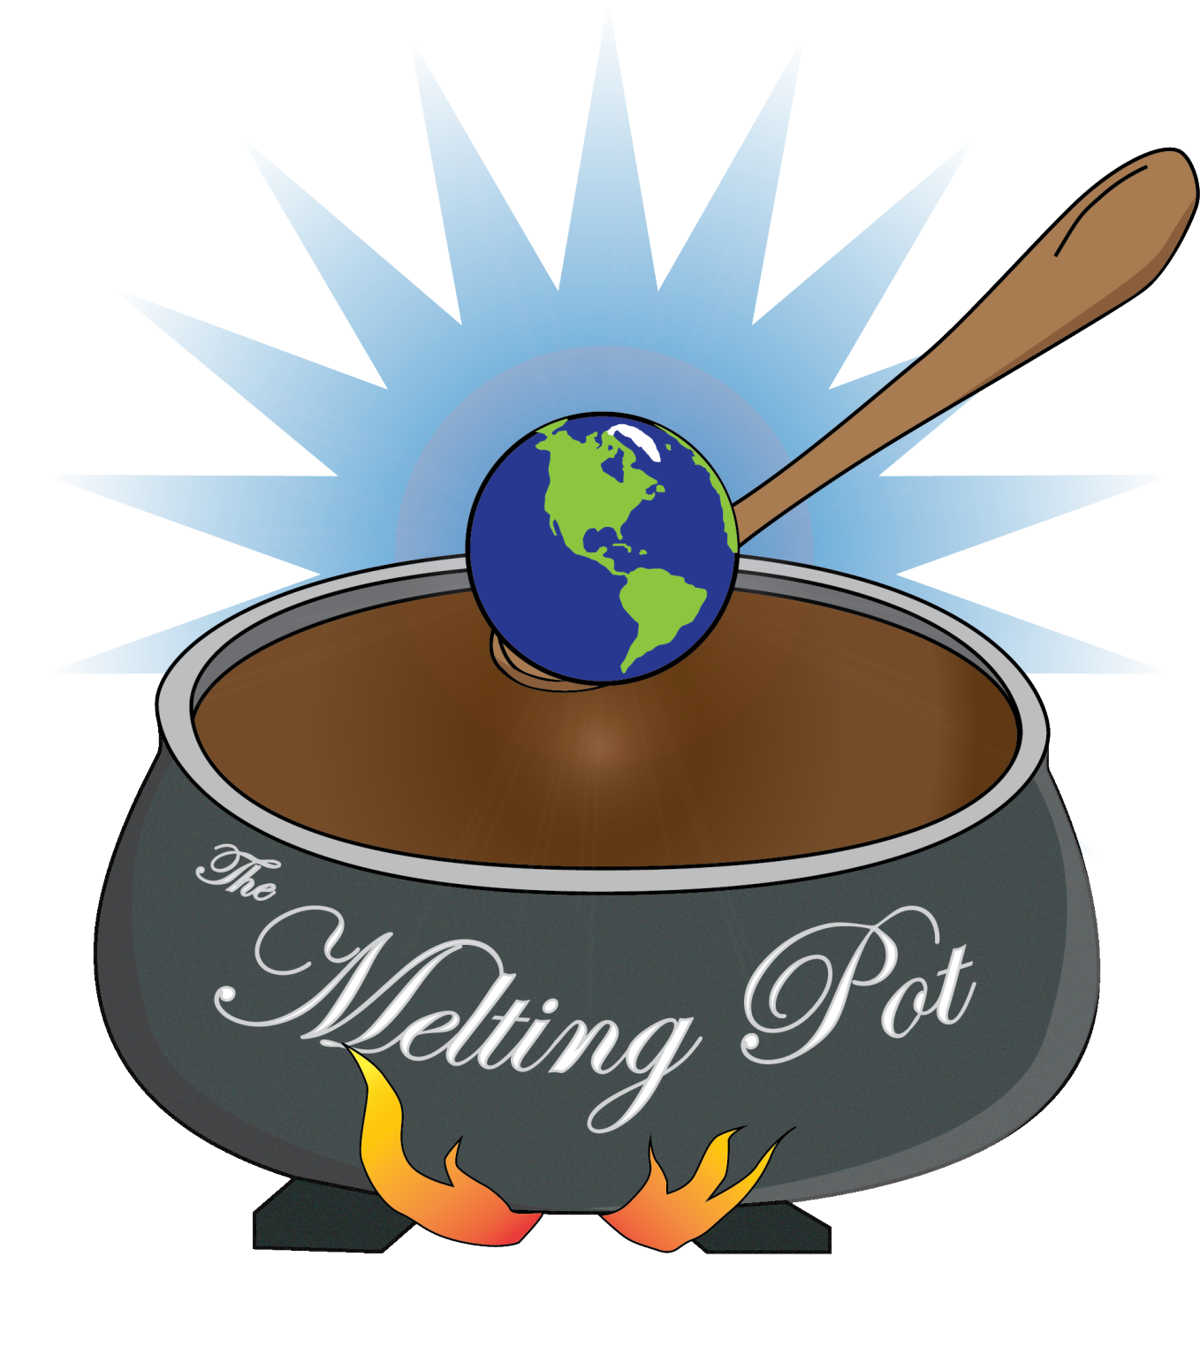 clipart royalty free stock Melting Pot Student Organization mixes cultures